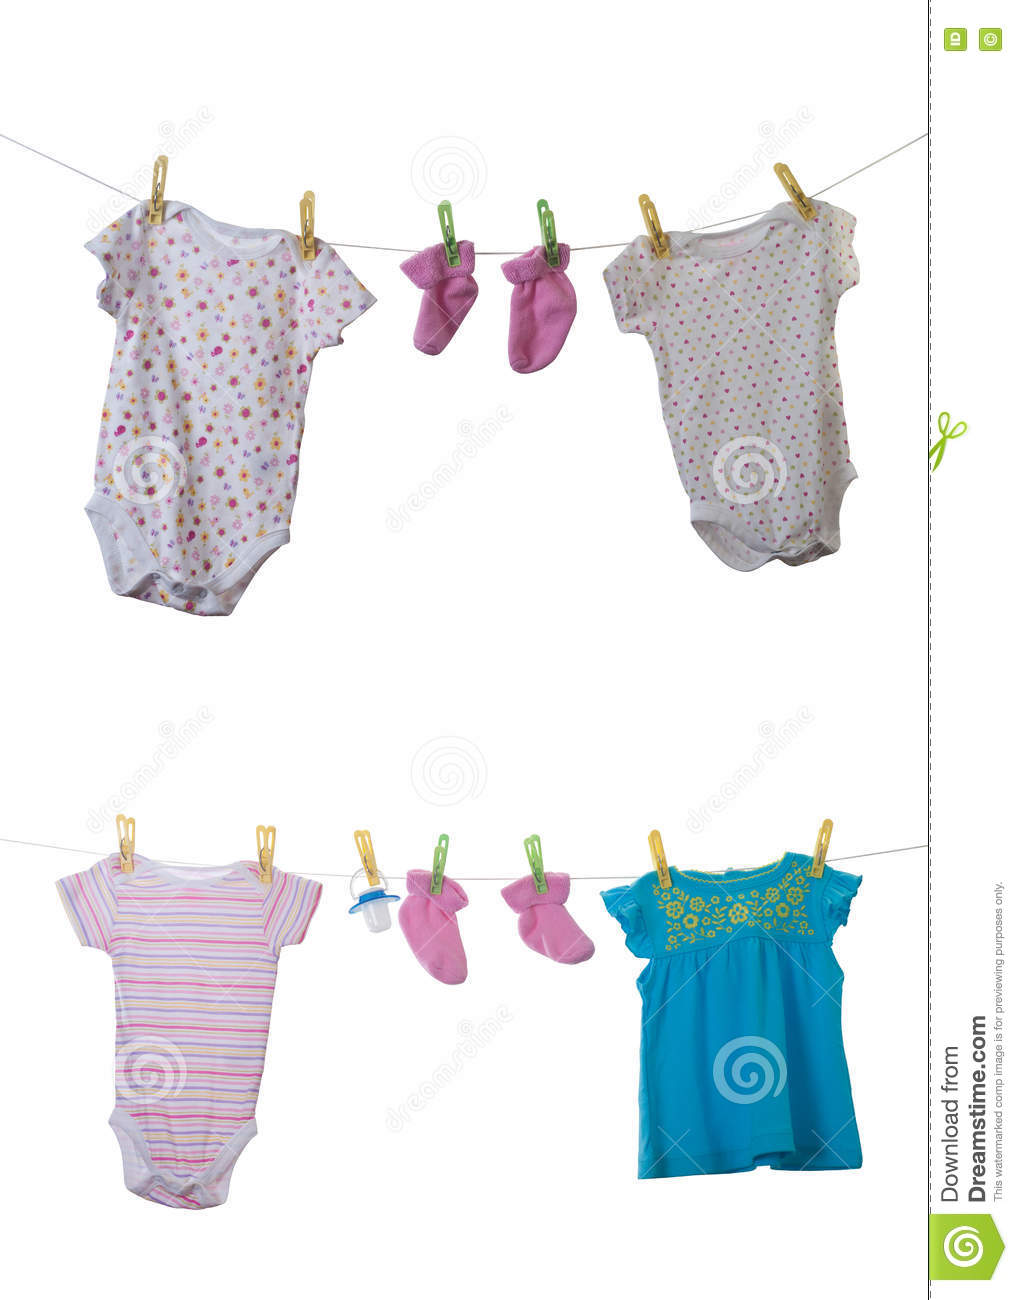 Baby clothes stock photo Image of first blue clothing